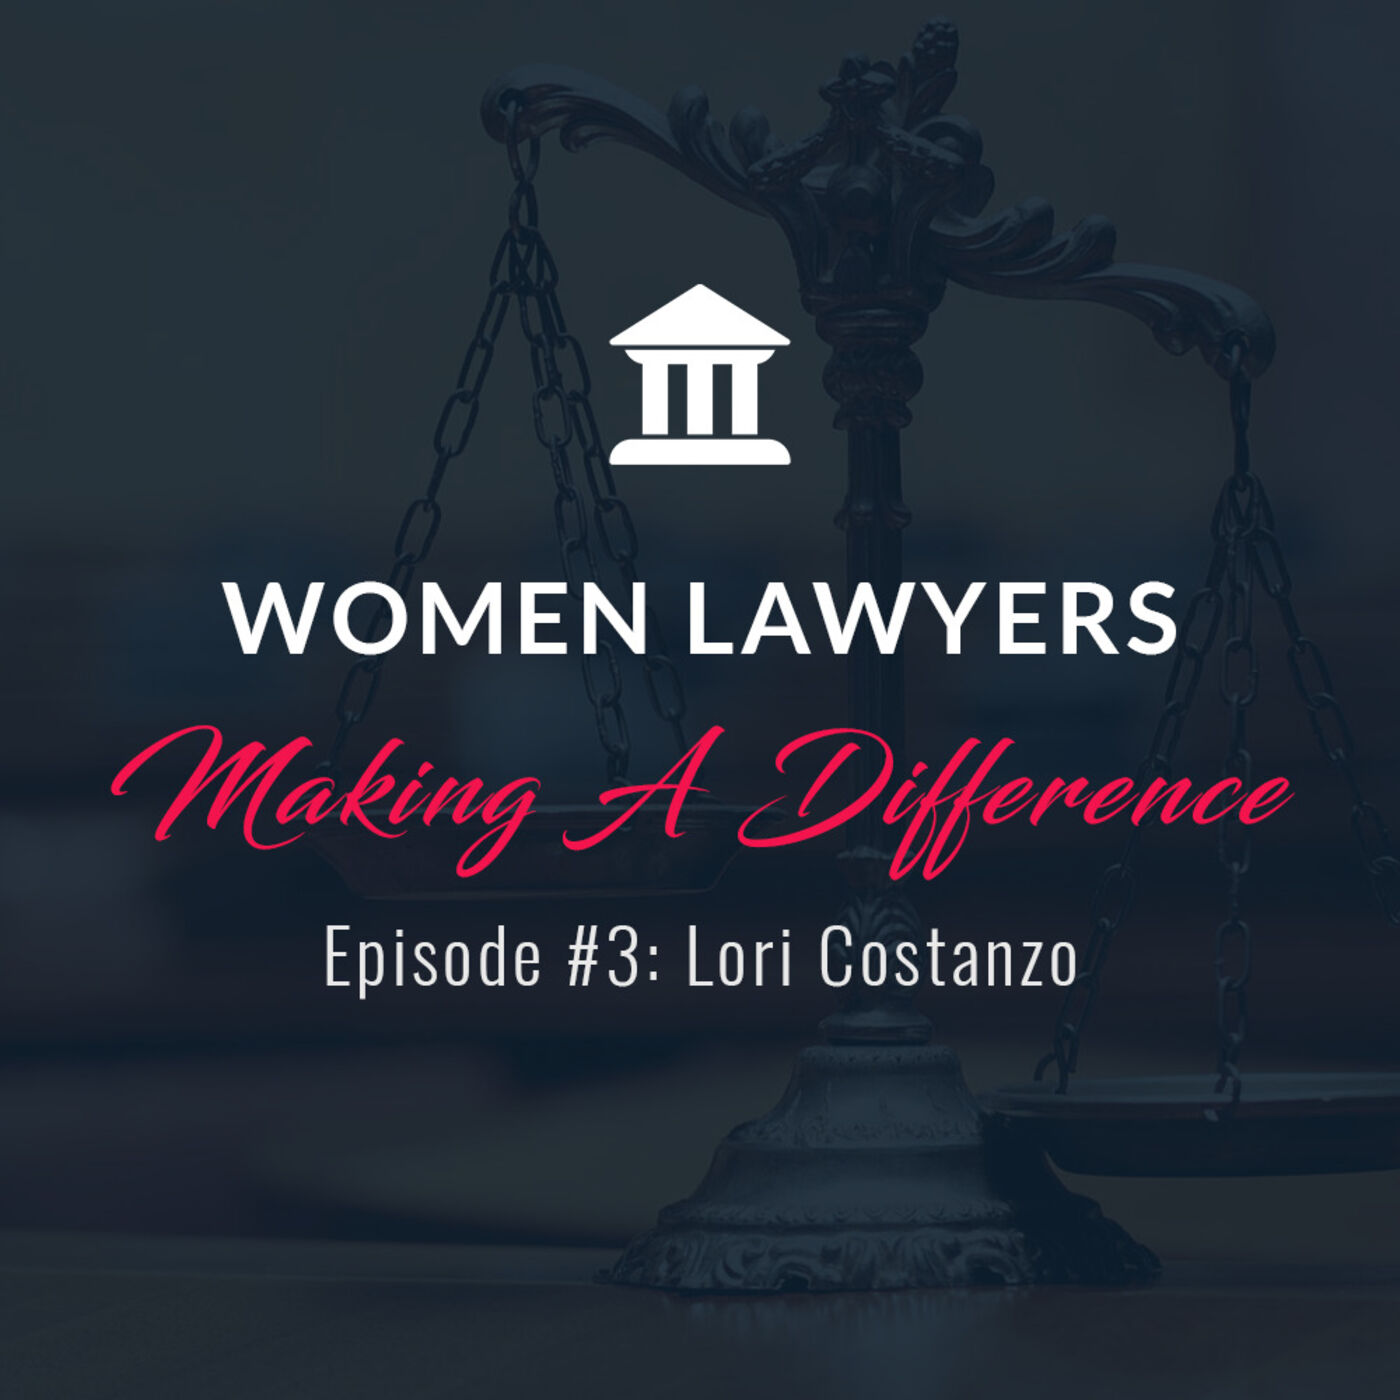 Women Lawyers Making A Difference: Interview with Lori Costanzo